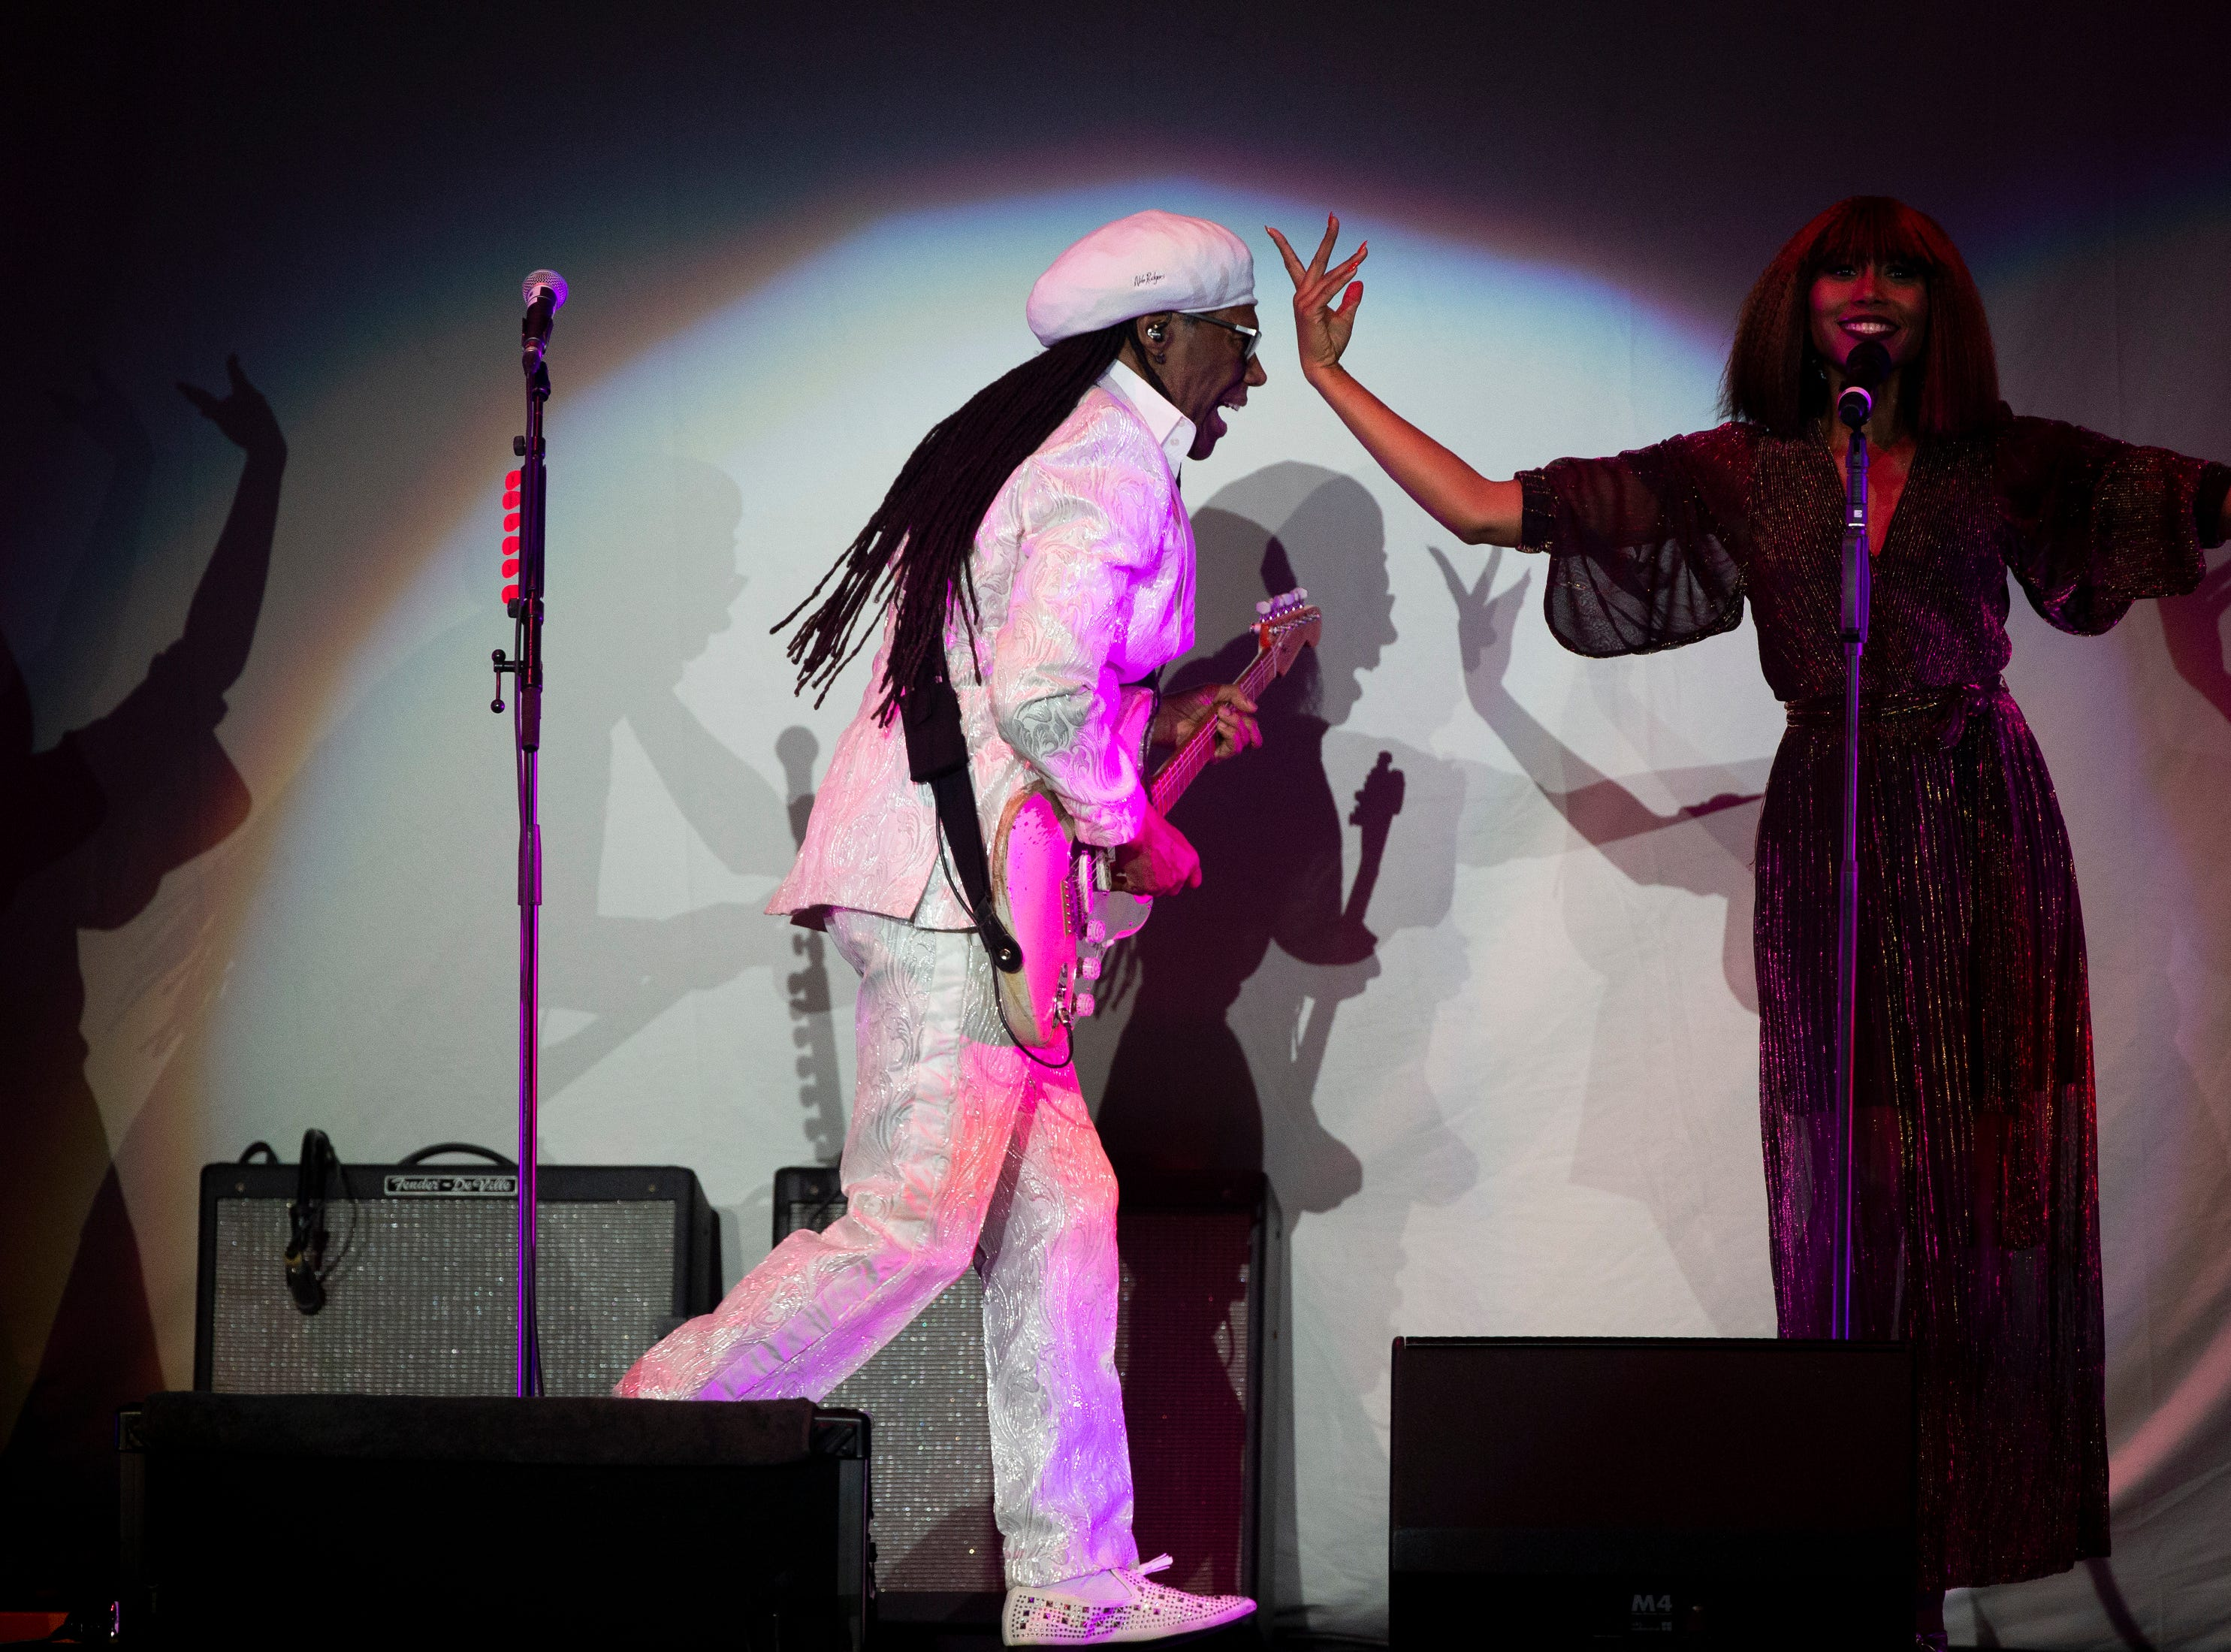 Nile Rodgers and Chic open up for Cher, Thursday, Jan. 17, 2019, at Hertz Arena in  Estero.